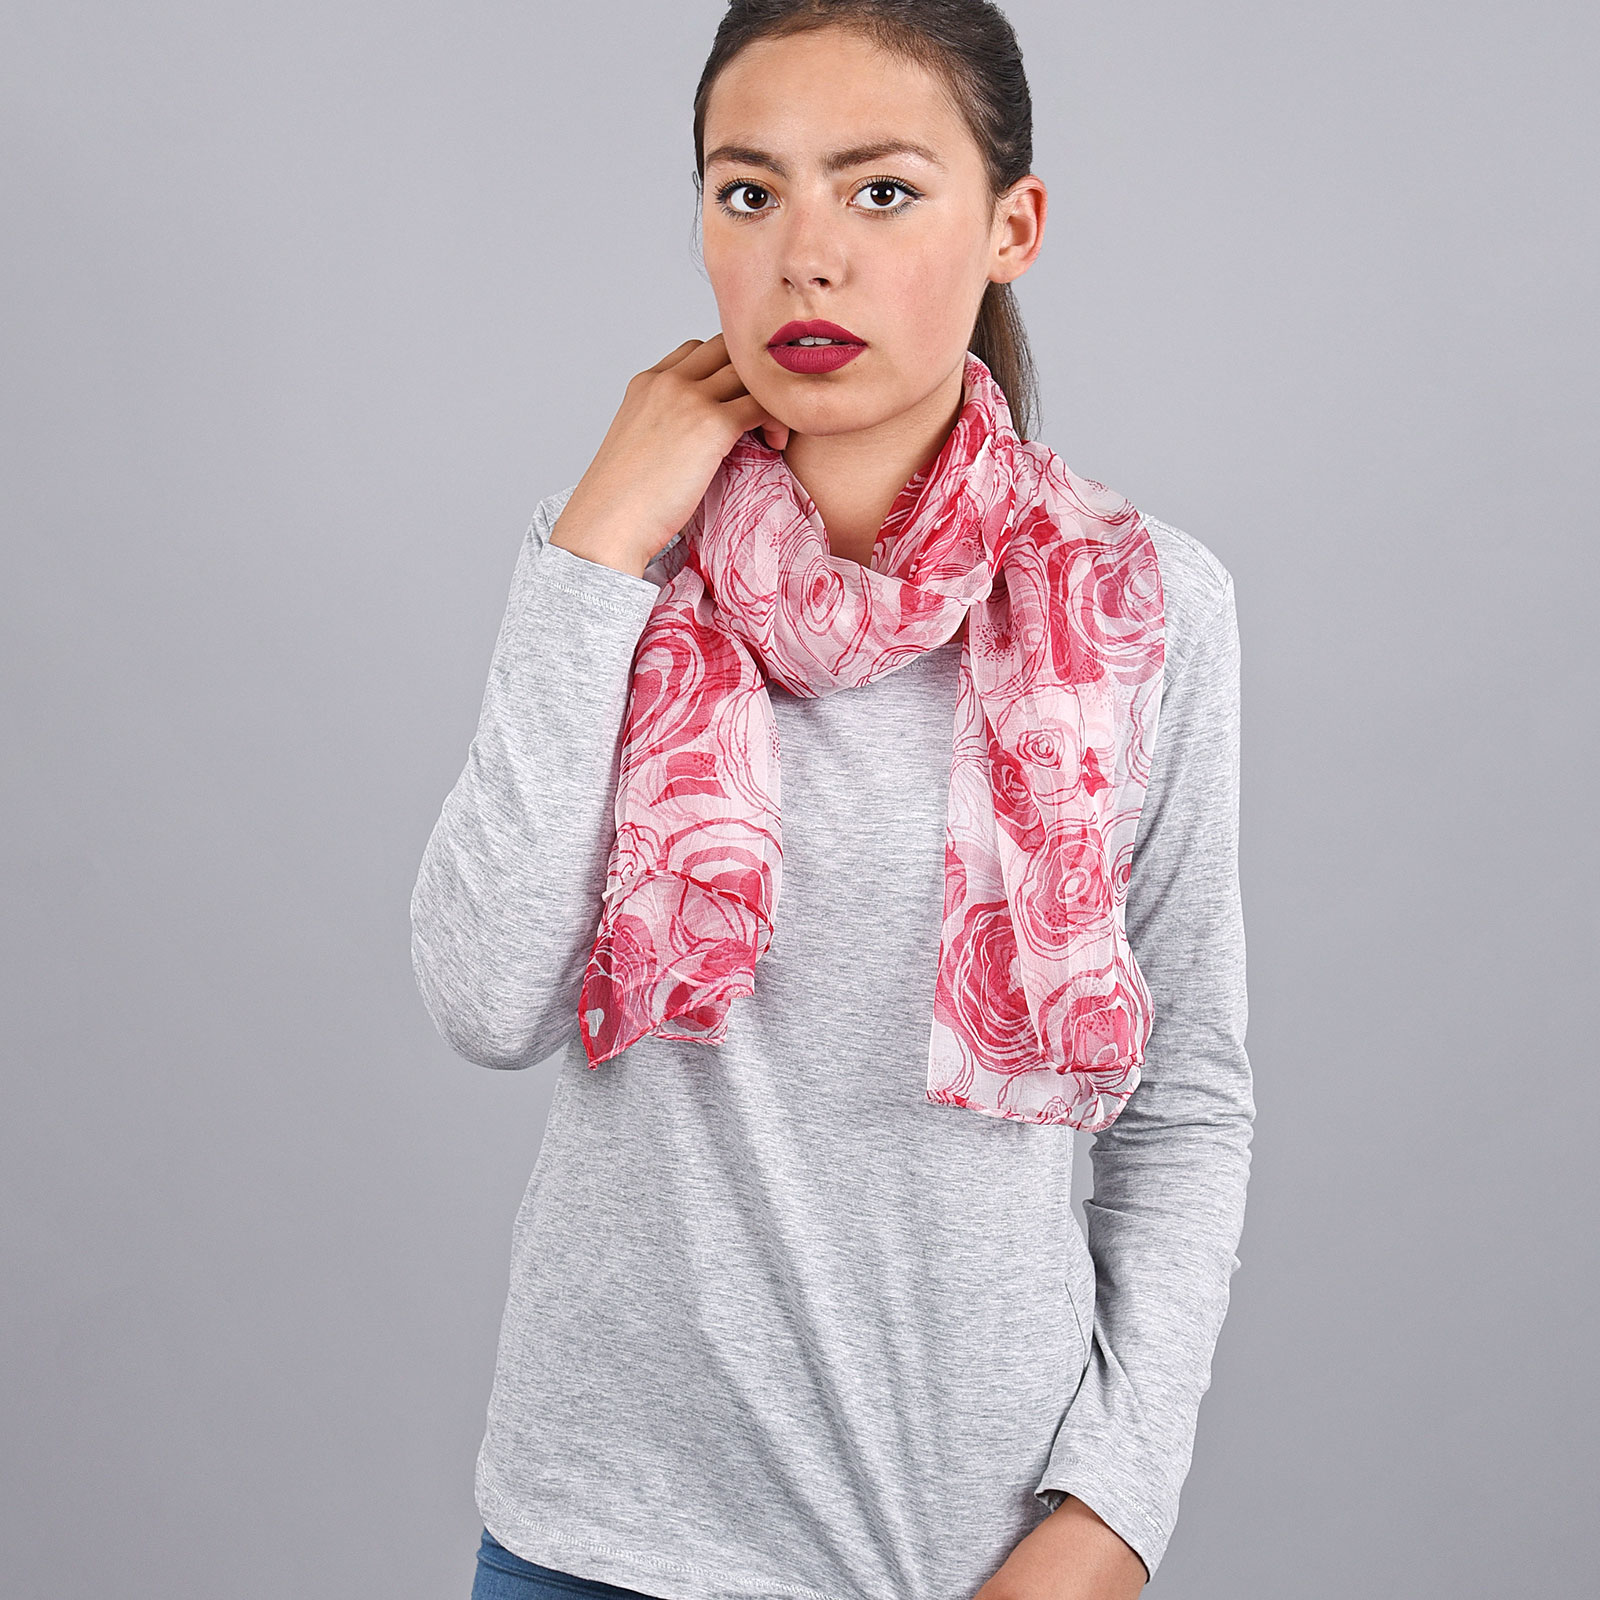 AT-03832-VF16-foulard-mousseline-soie-roses-rouges